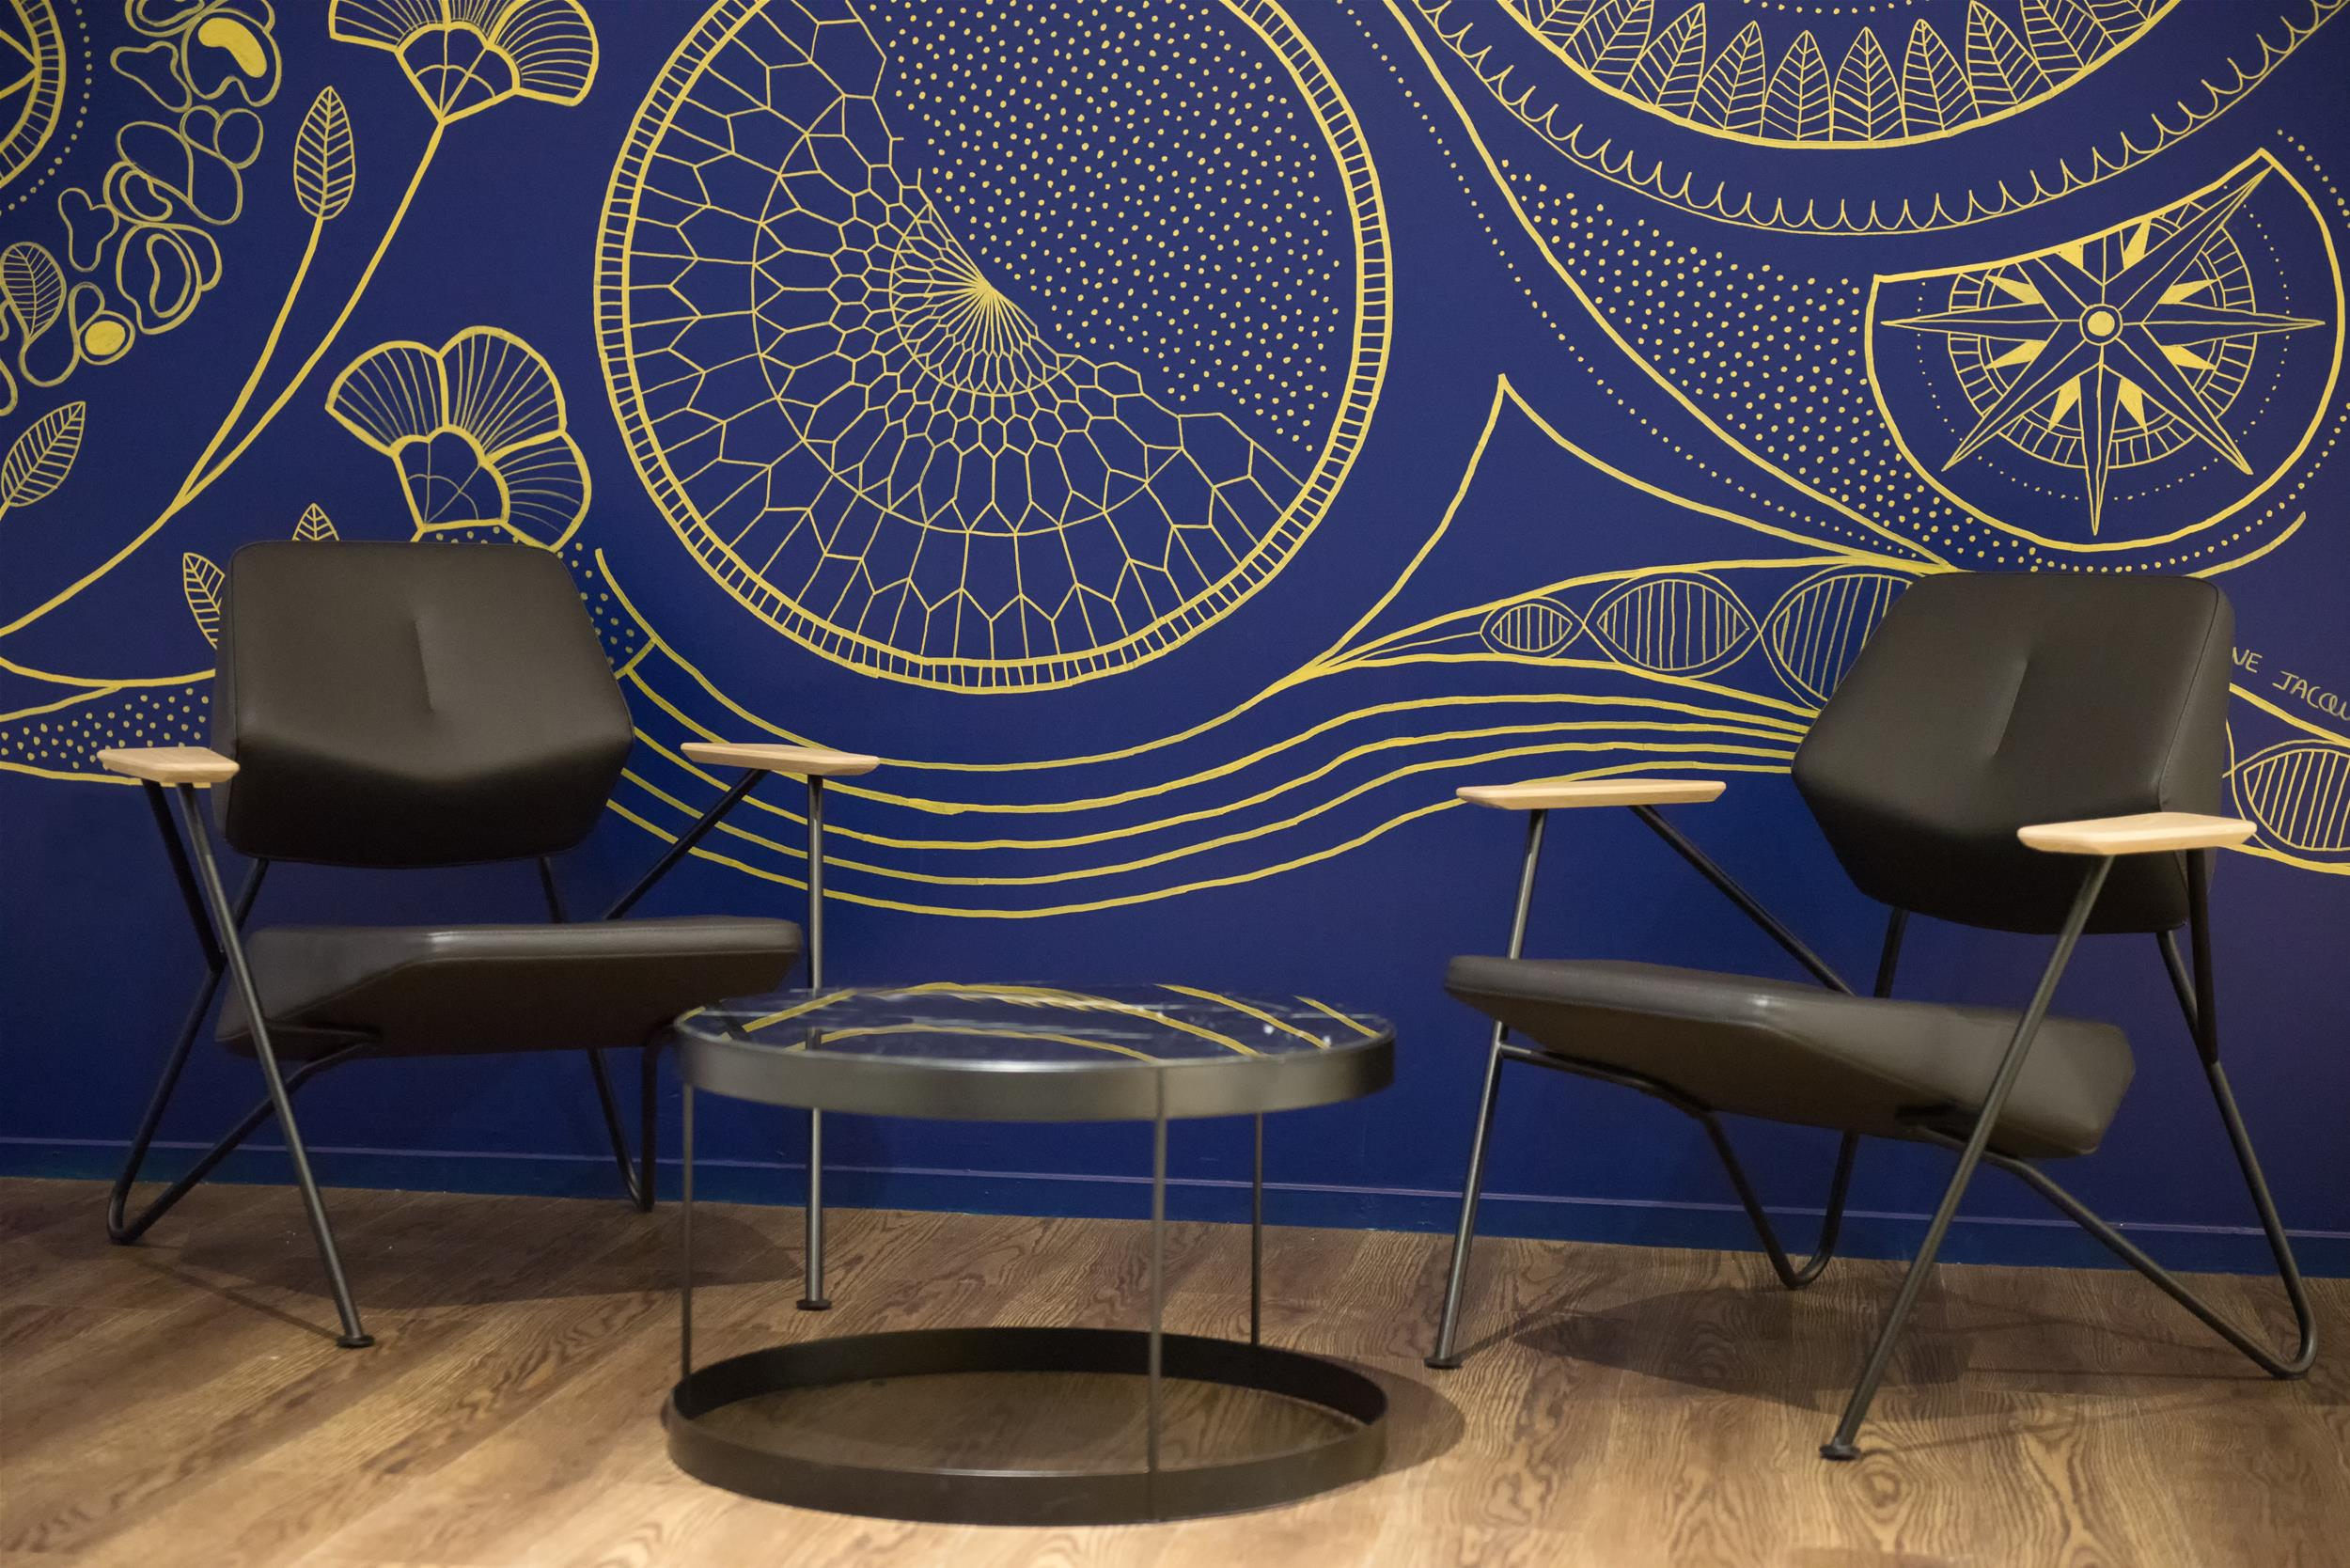 BY CLEMENT REISKY-MOBILIER PROFESSIONNEL